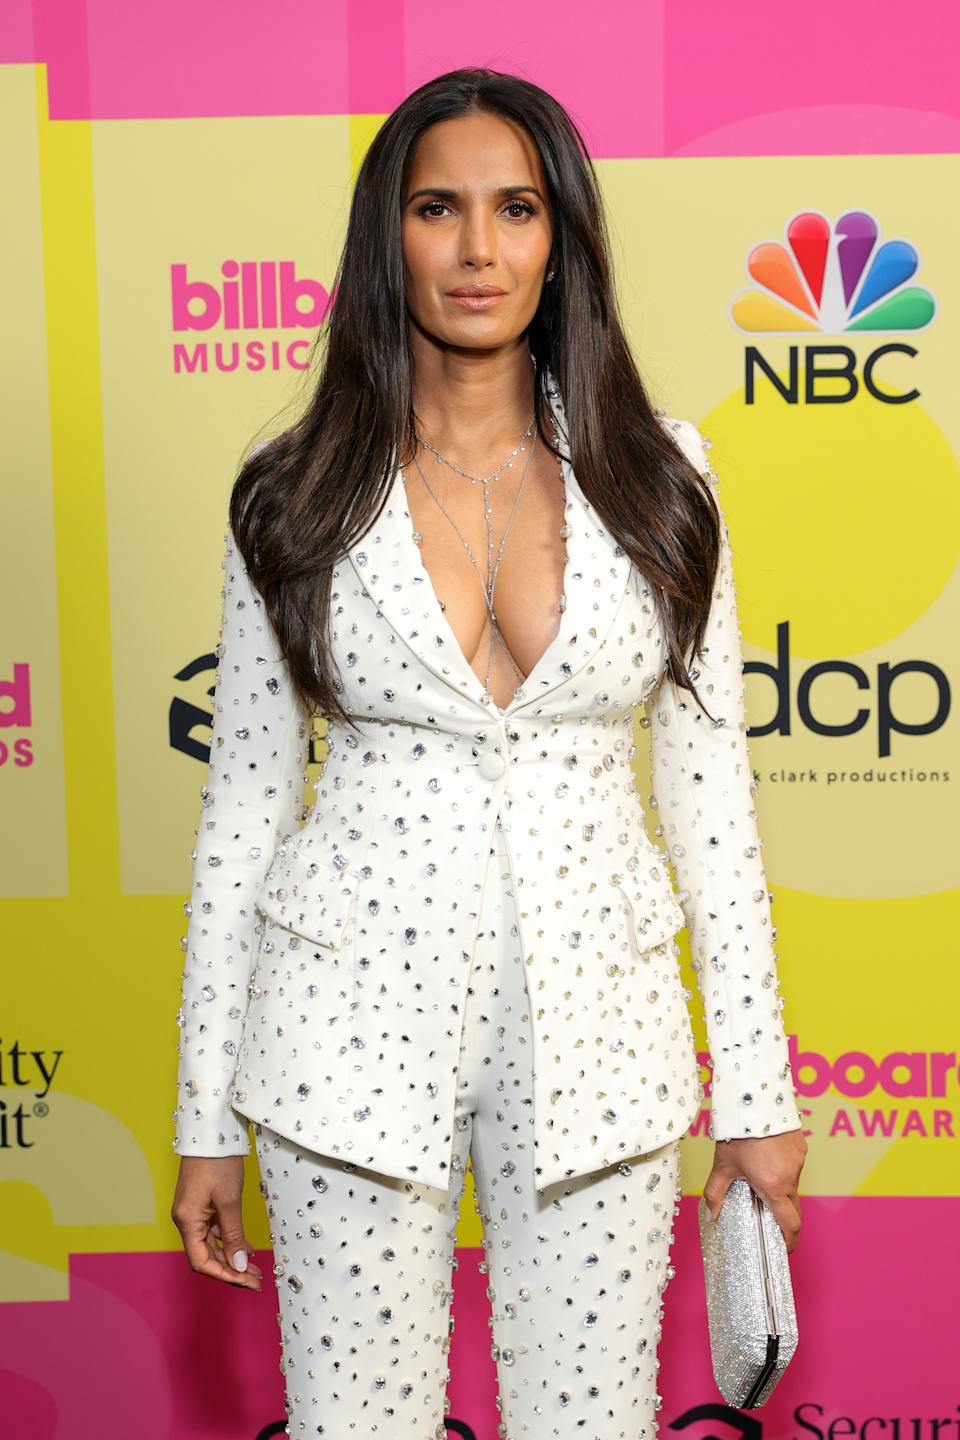 LOS ANGELES, CALIFORNIA - MAY 23: Padma Lakshmi poses backstage for the 2021 Billboard Music Awards, broadcast on May 23, 2021 at Microsoft Theater in Los Angeles, California. (Photo by Rich Fury/Getty Images for dcp)